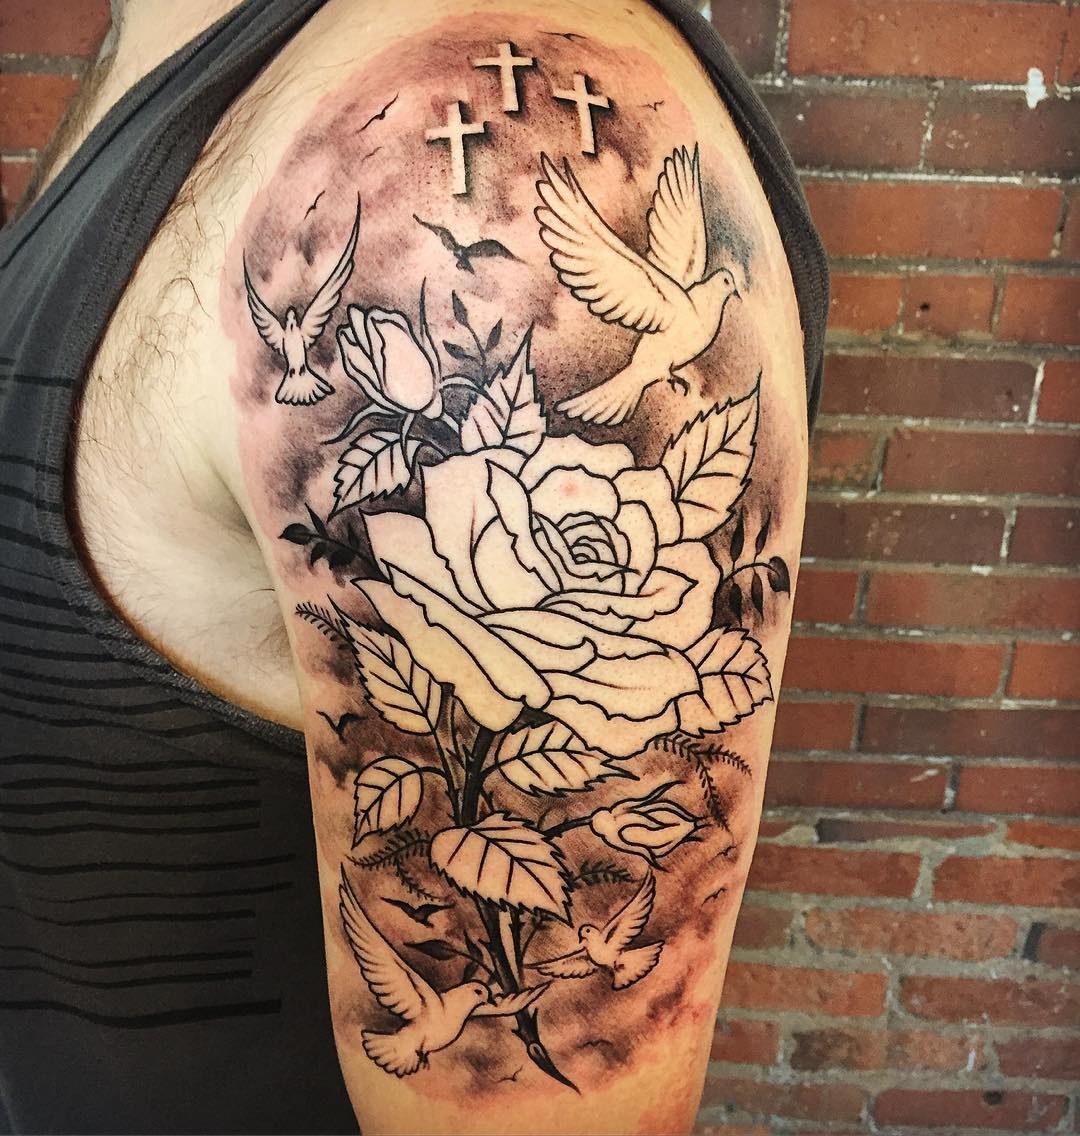 Dove and Rose Tattoo on Arms